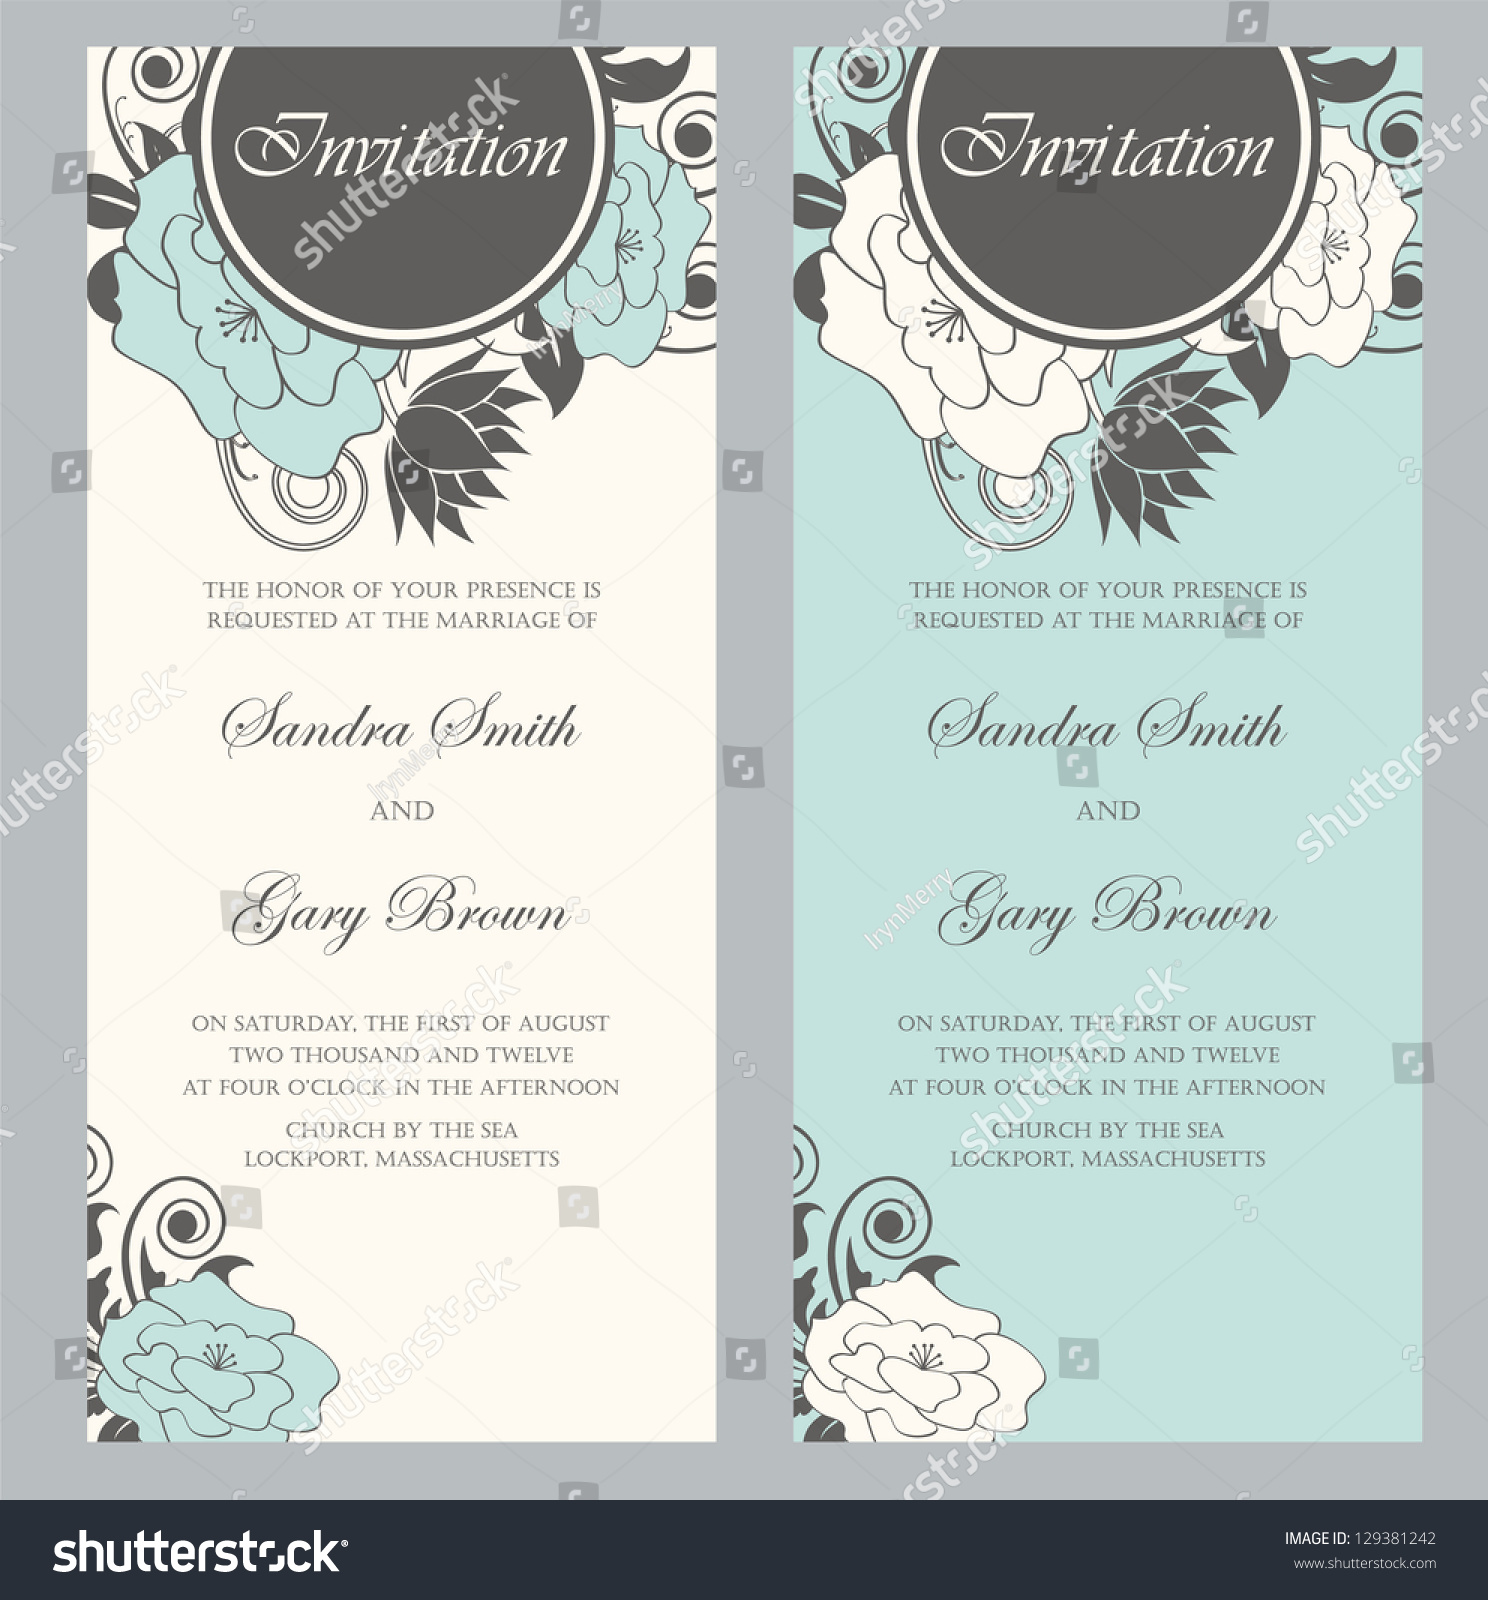 stock vector beautiful floral wedding invitations vector illustration floral wedding invitations Beautiful floral wedding invitations Vector illustration